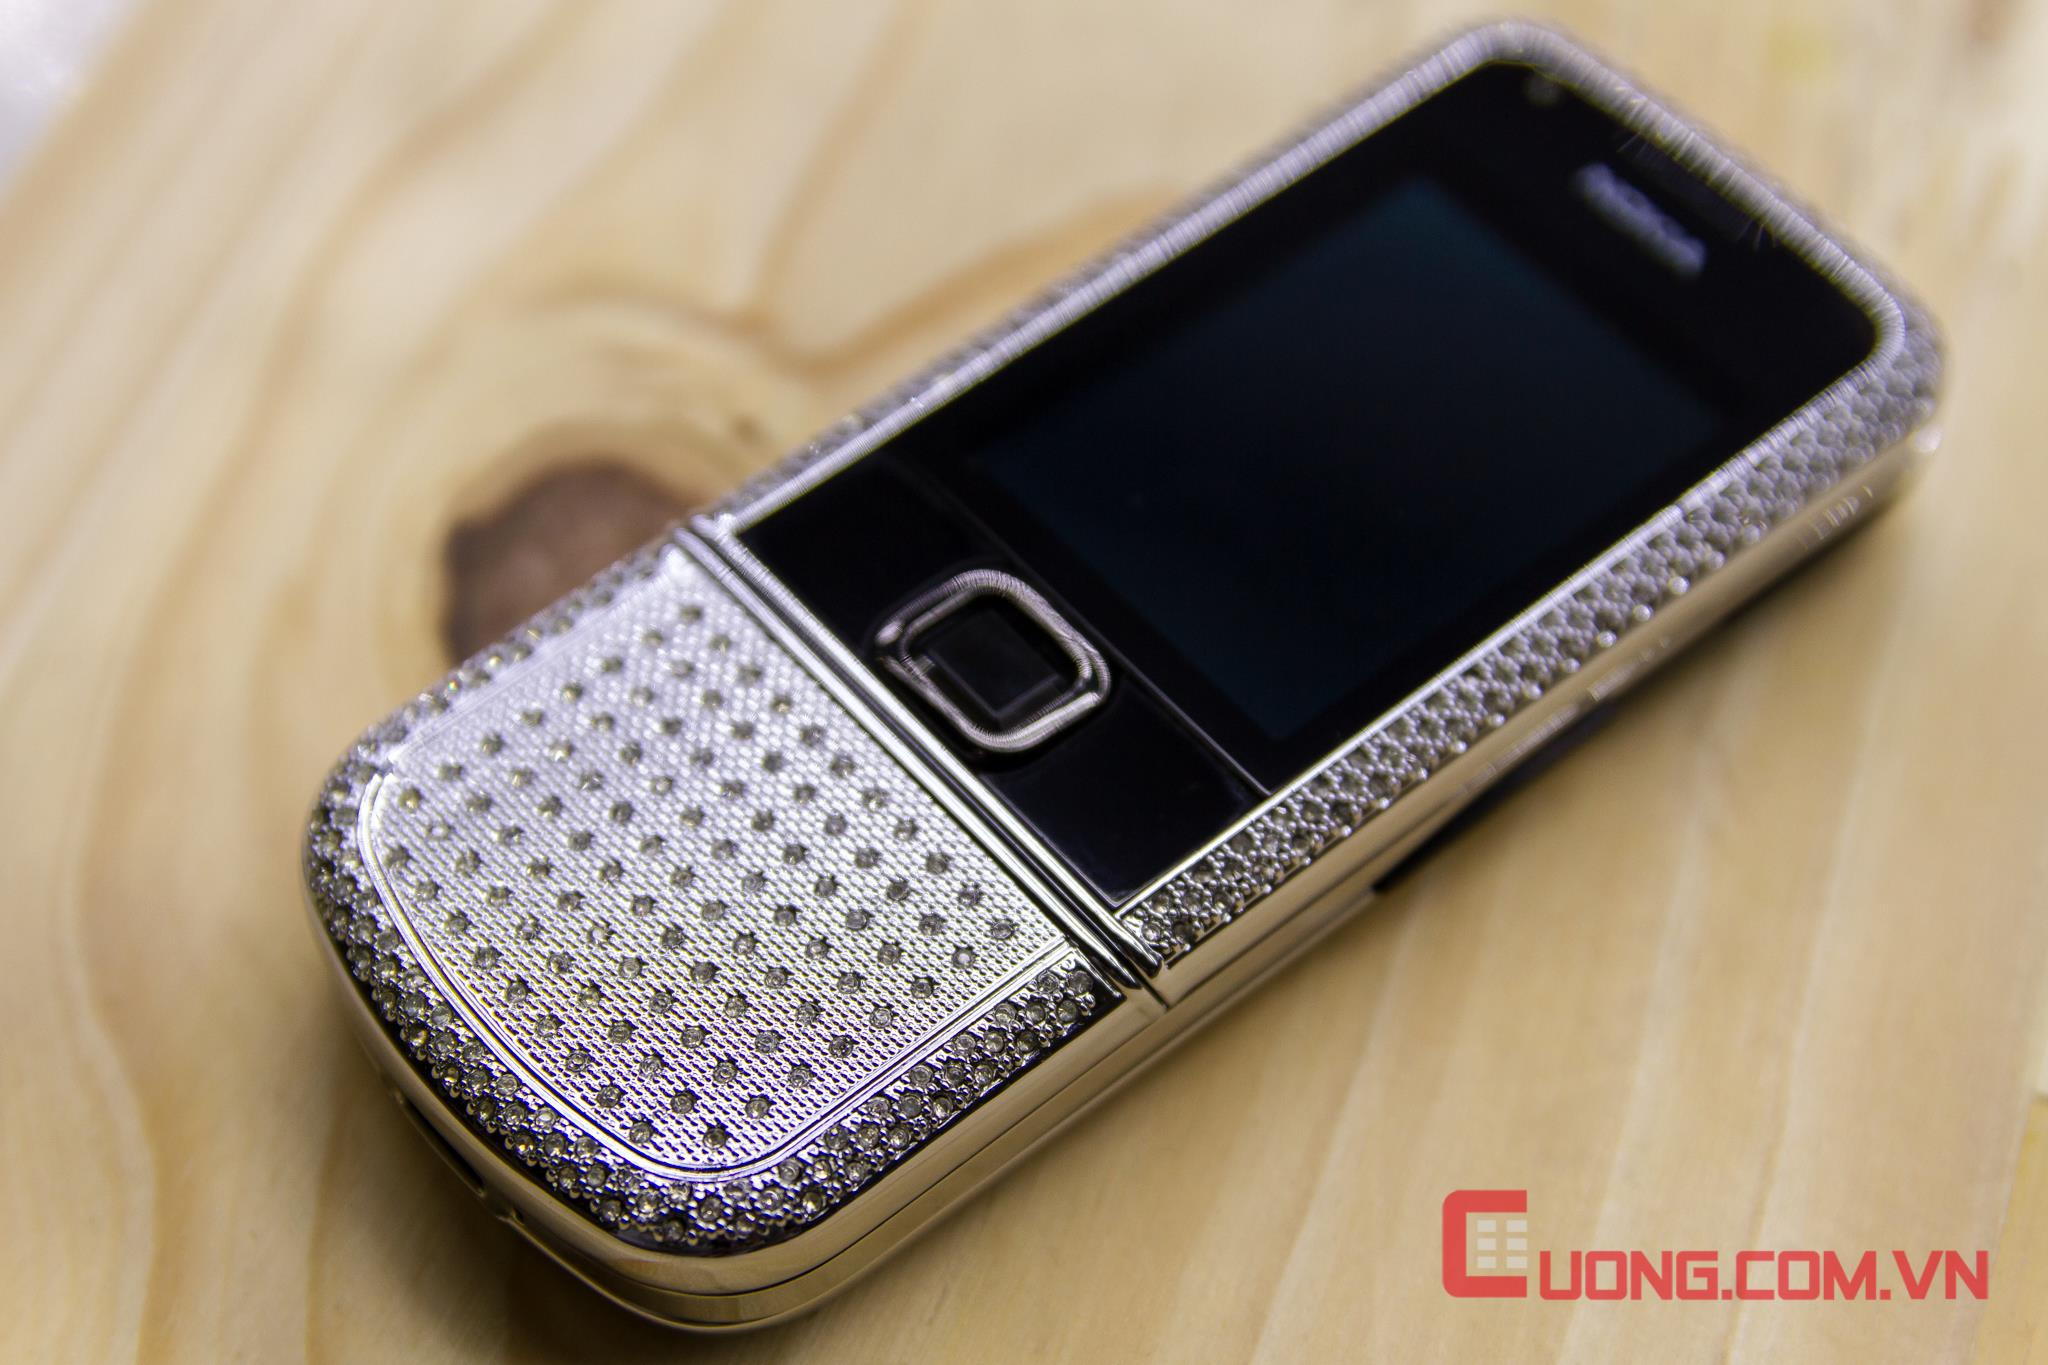 Nokia 8800 Black Arte Diamond